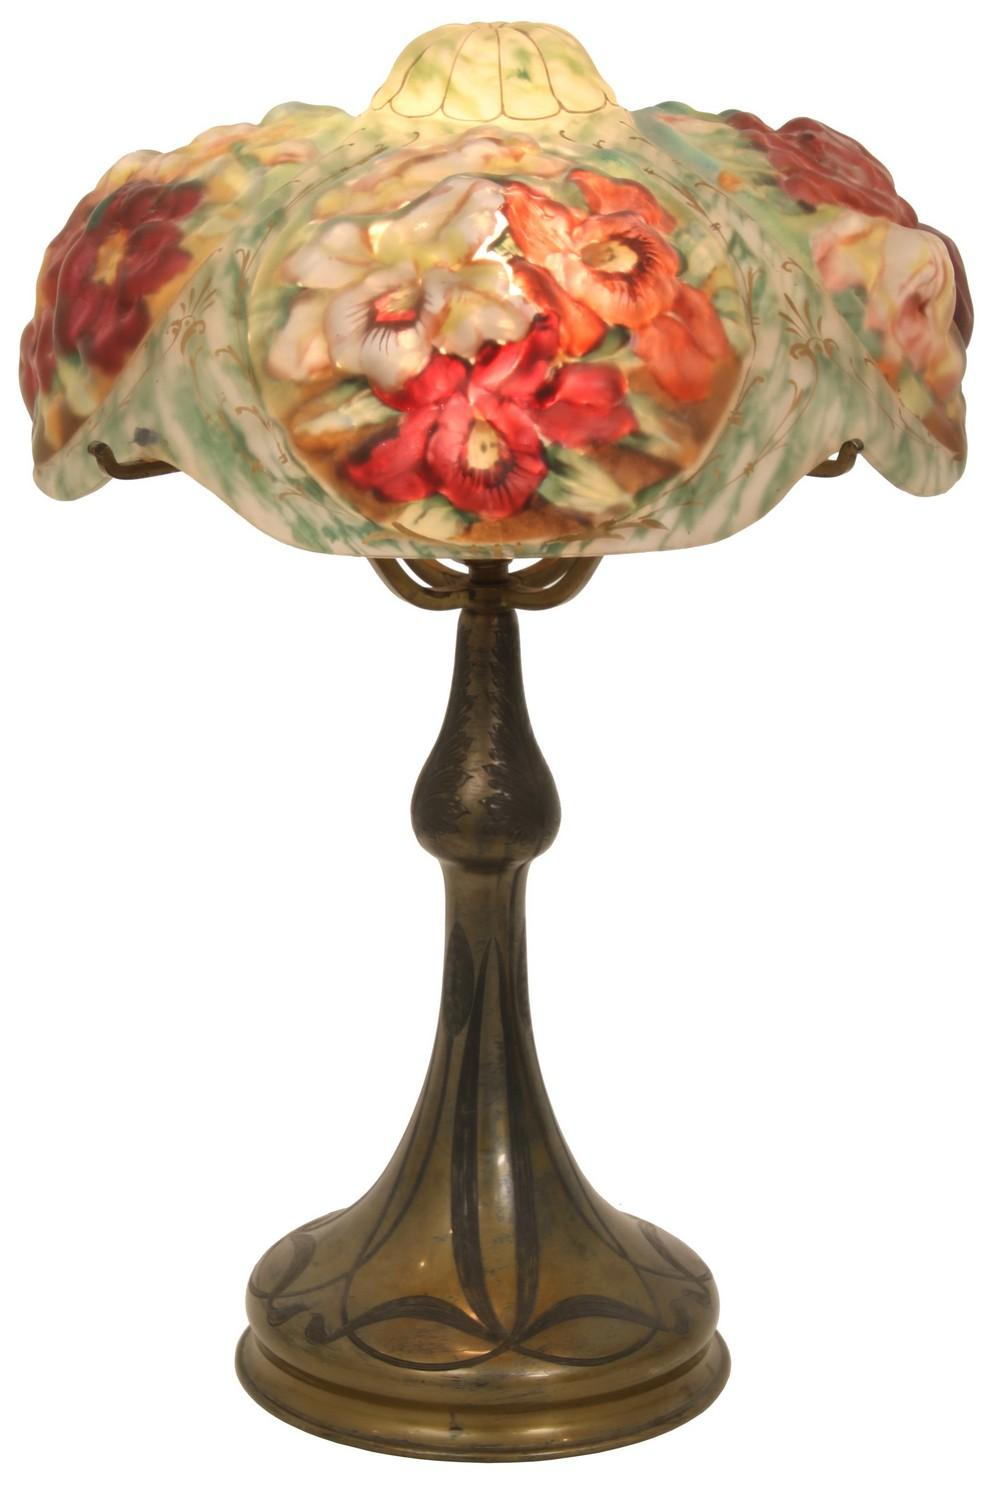 Pairpoint Puffy Oxford Table Lamp